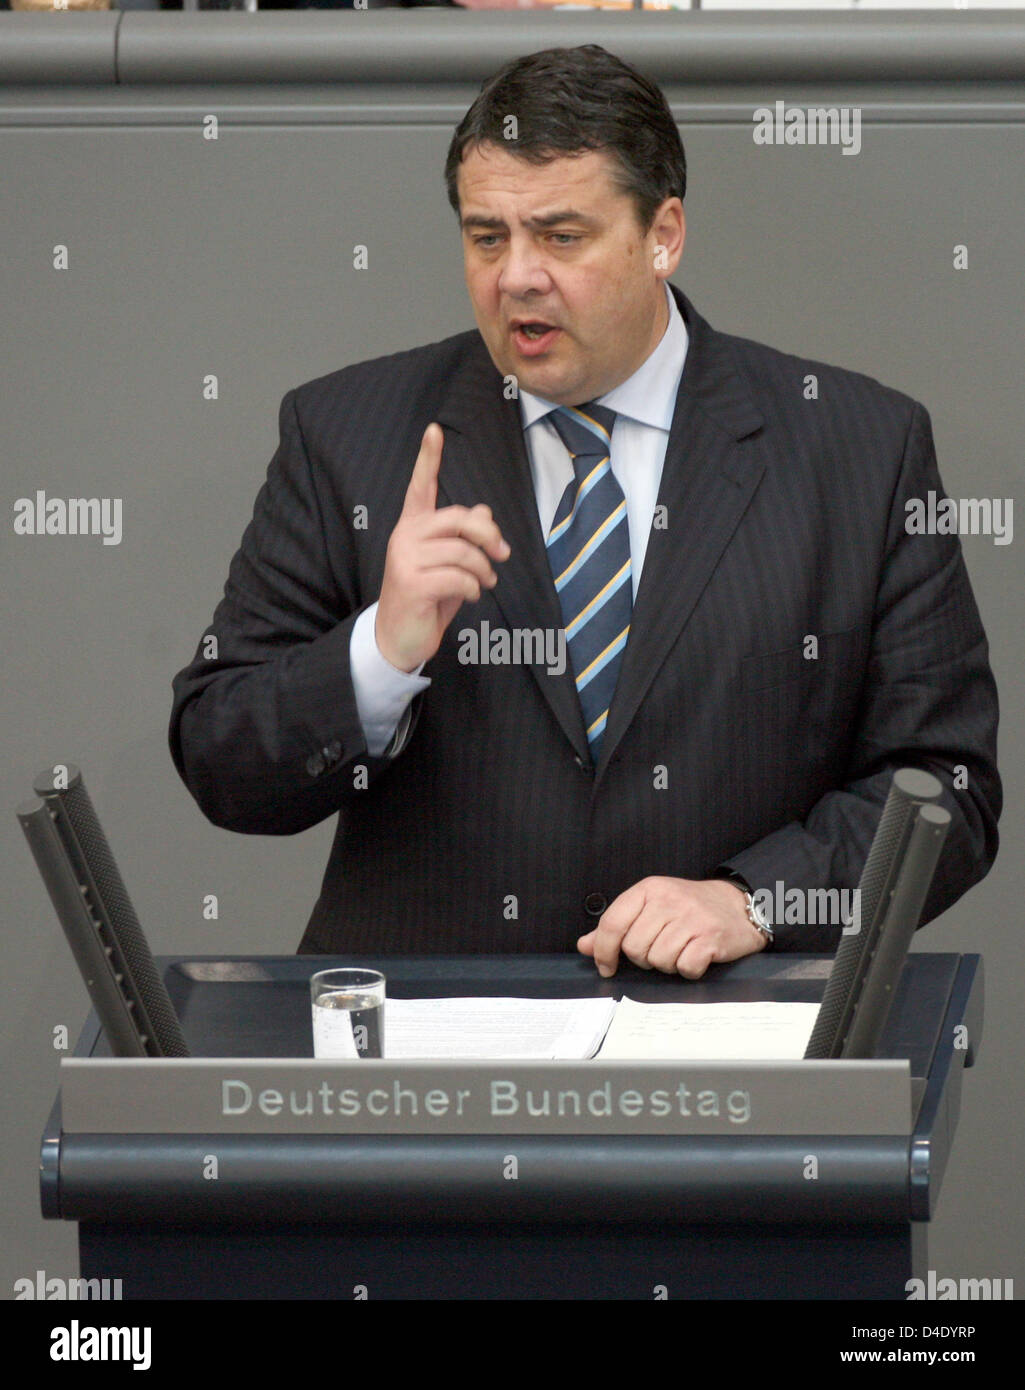 German Environment Minister Sigmar Gabriel delivers a speech at the Bundestag in Berlin, Germany, 08 May 2008. The Bundestag debates on the extinction of vital plant and animal species in view of the nature protection conference to be held mid-month in Bonn. Photo: RAINER JENSEN Stock Photo